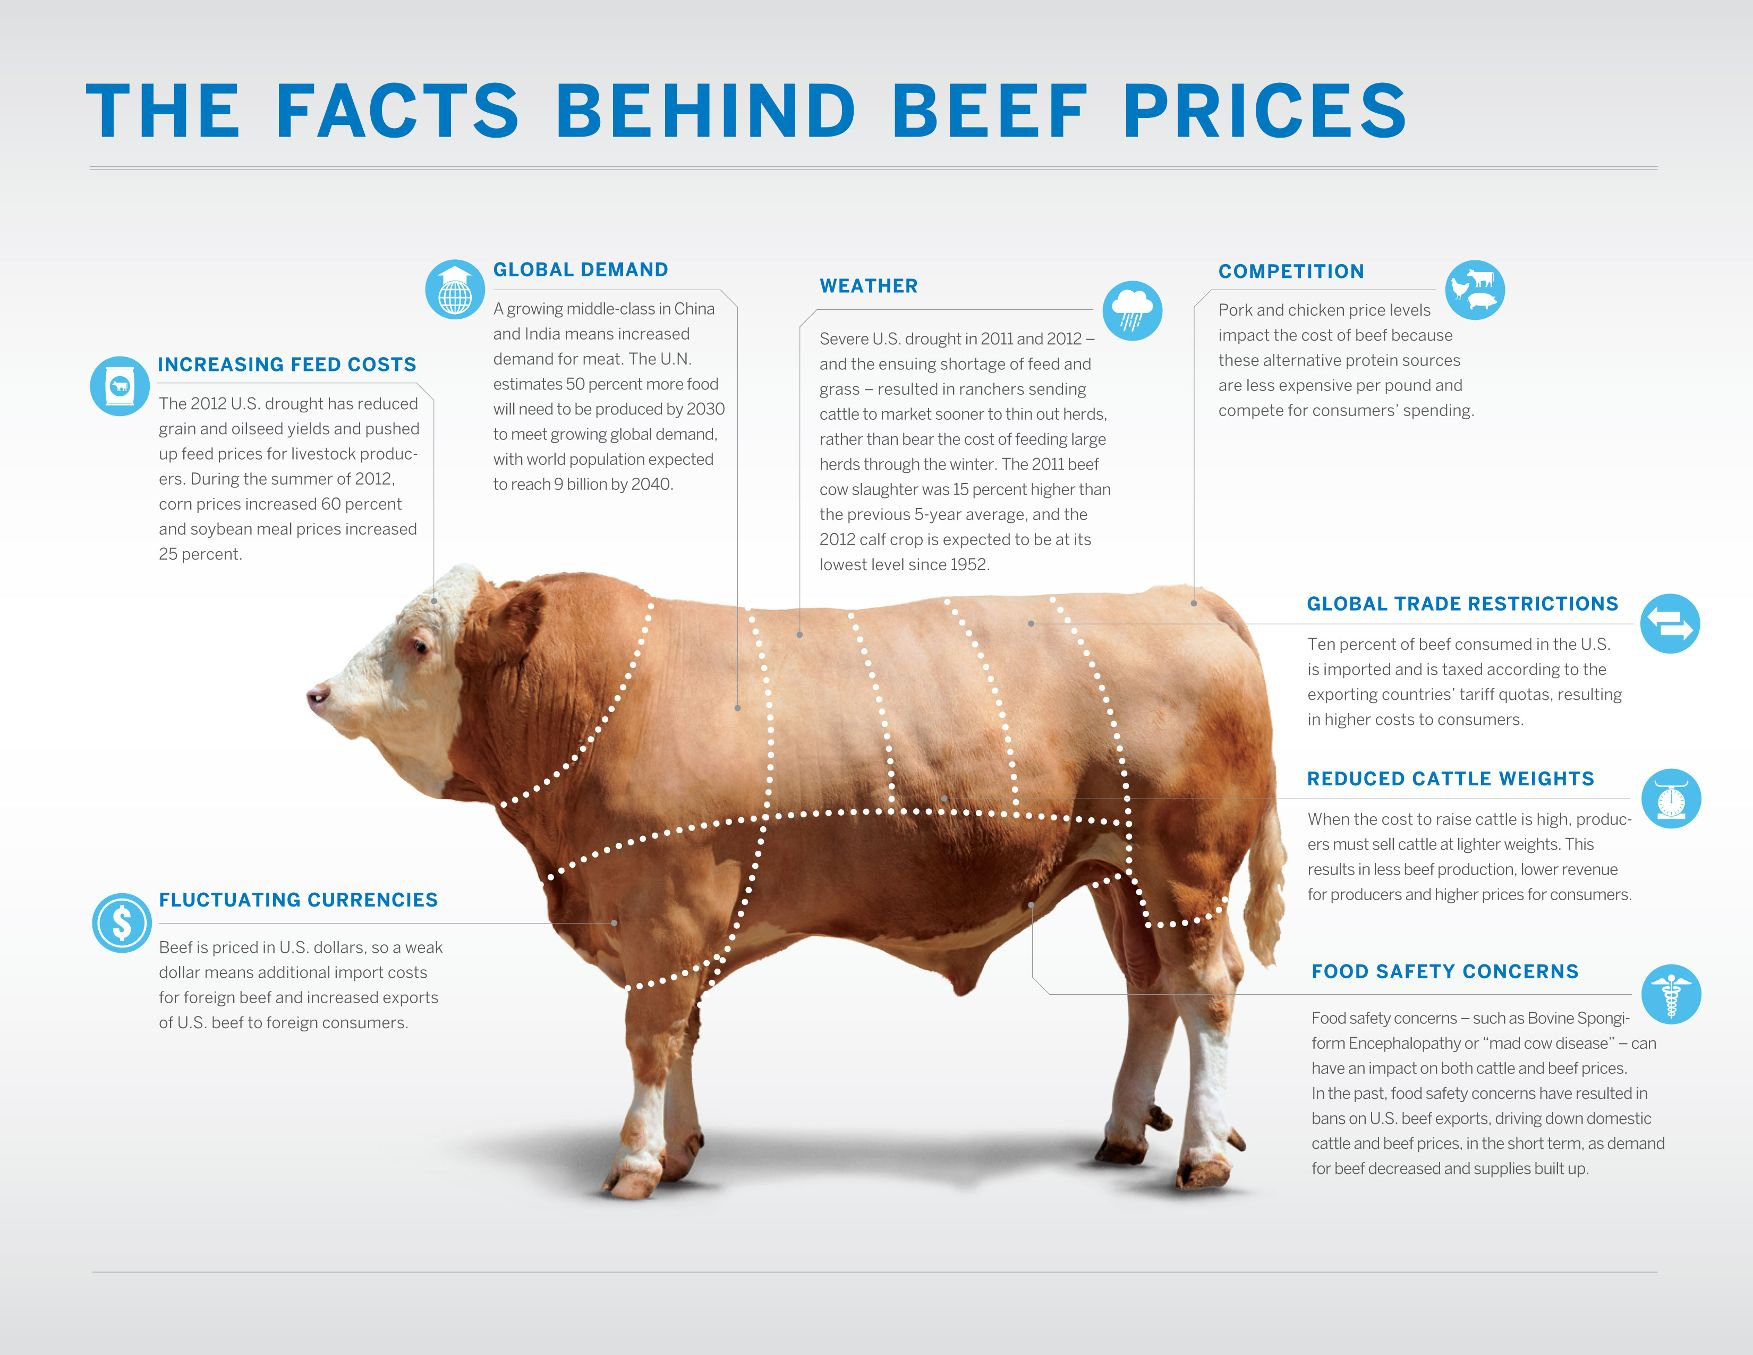 infographic-facts-behind-beef-prices.jpg